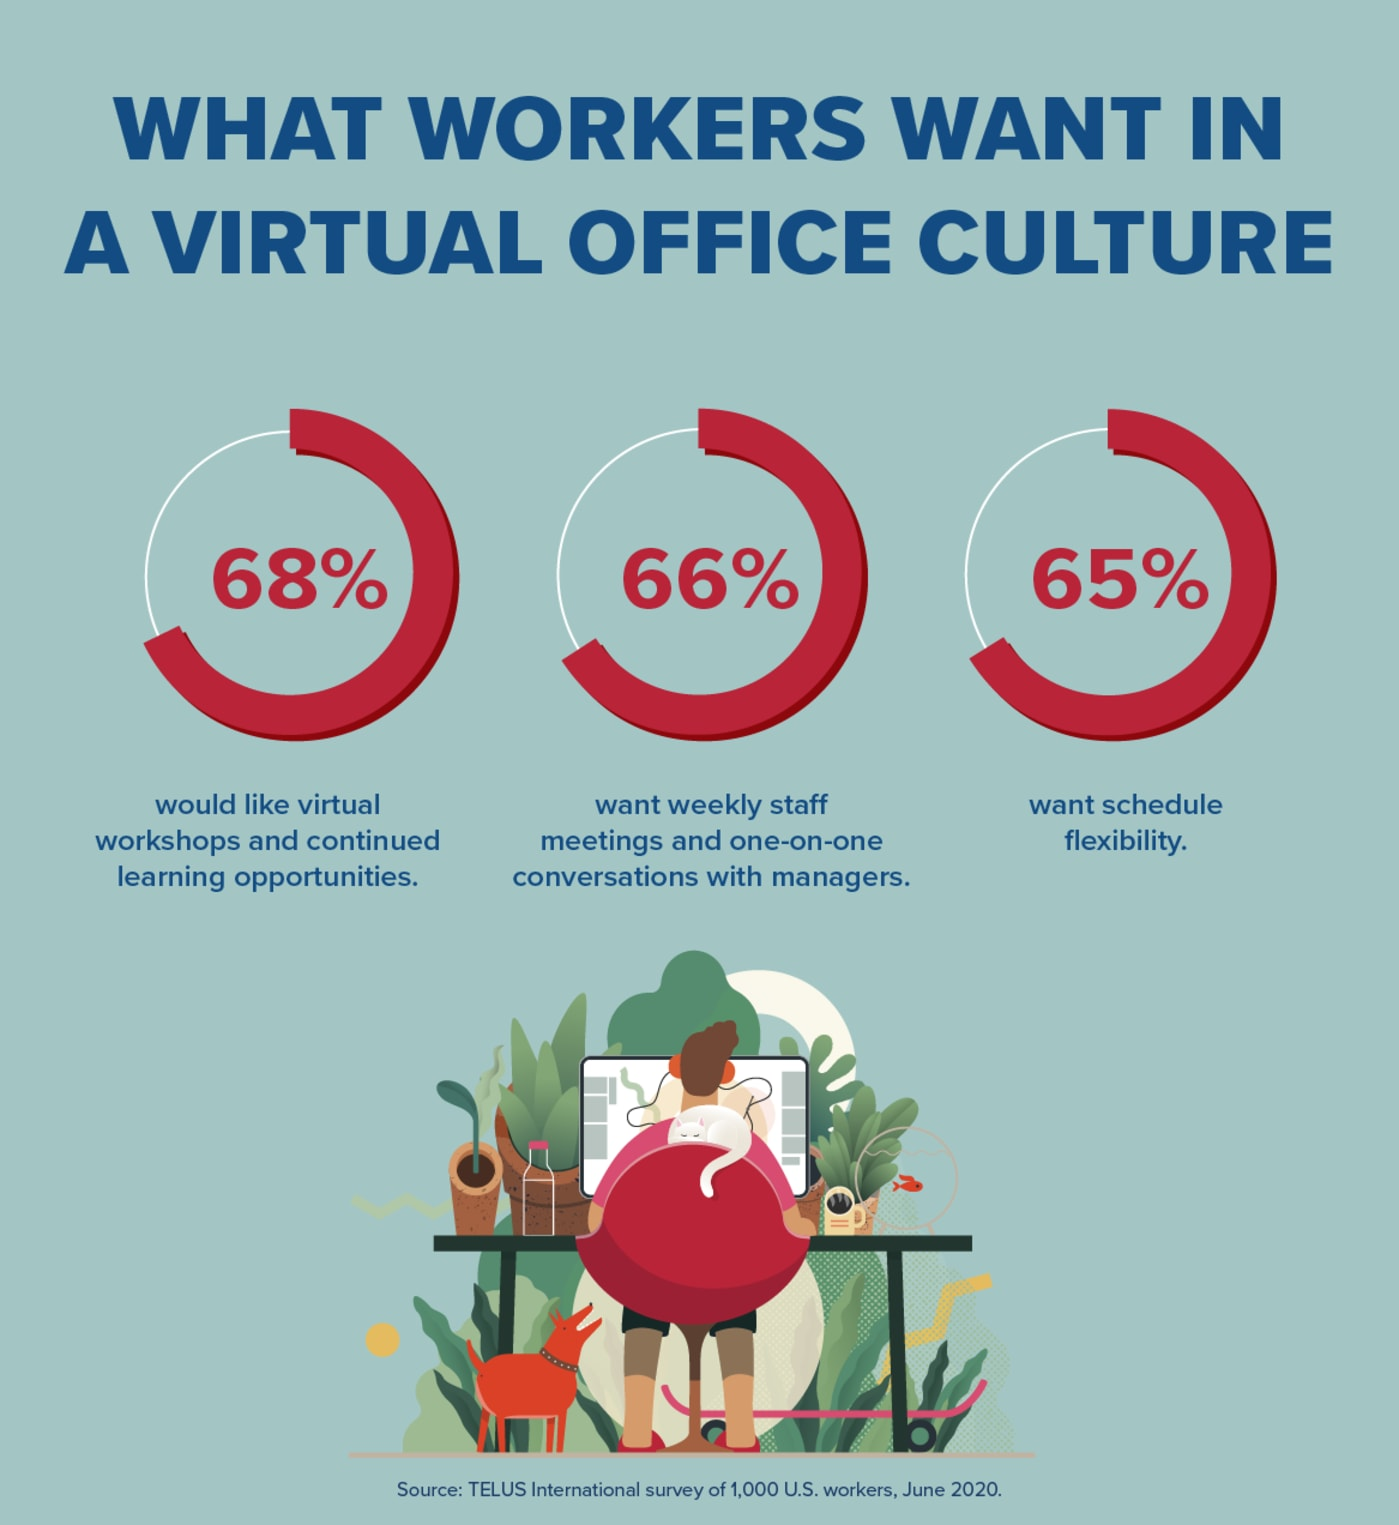 What Workers Want in a Virtual Office Culture